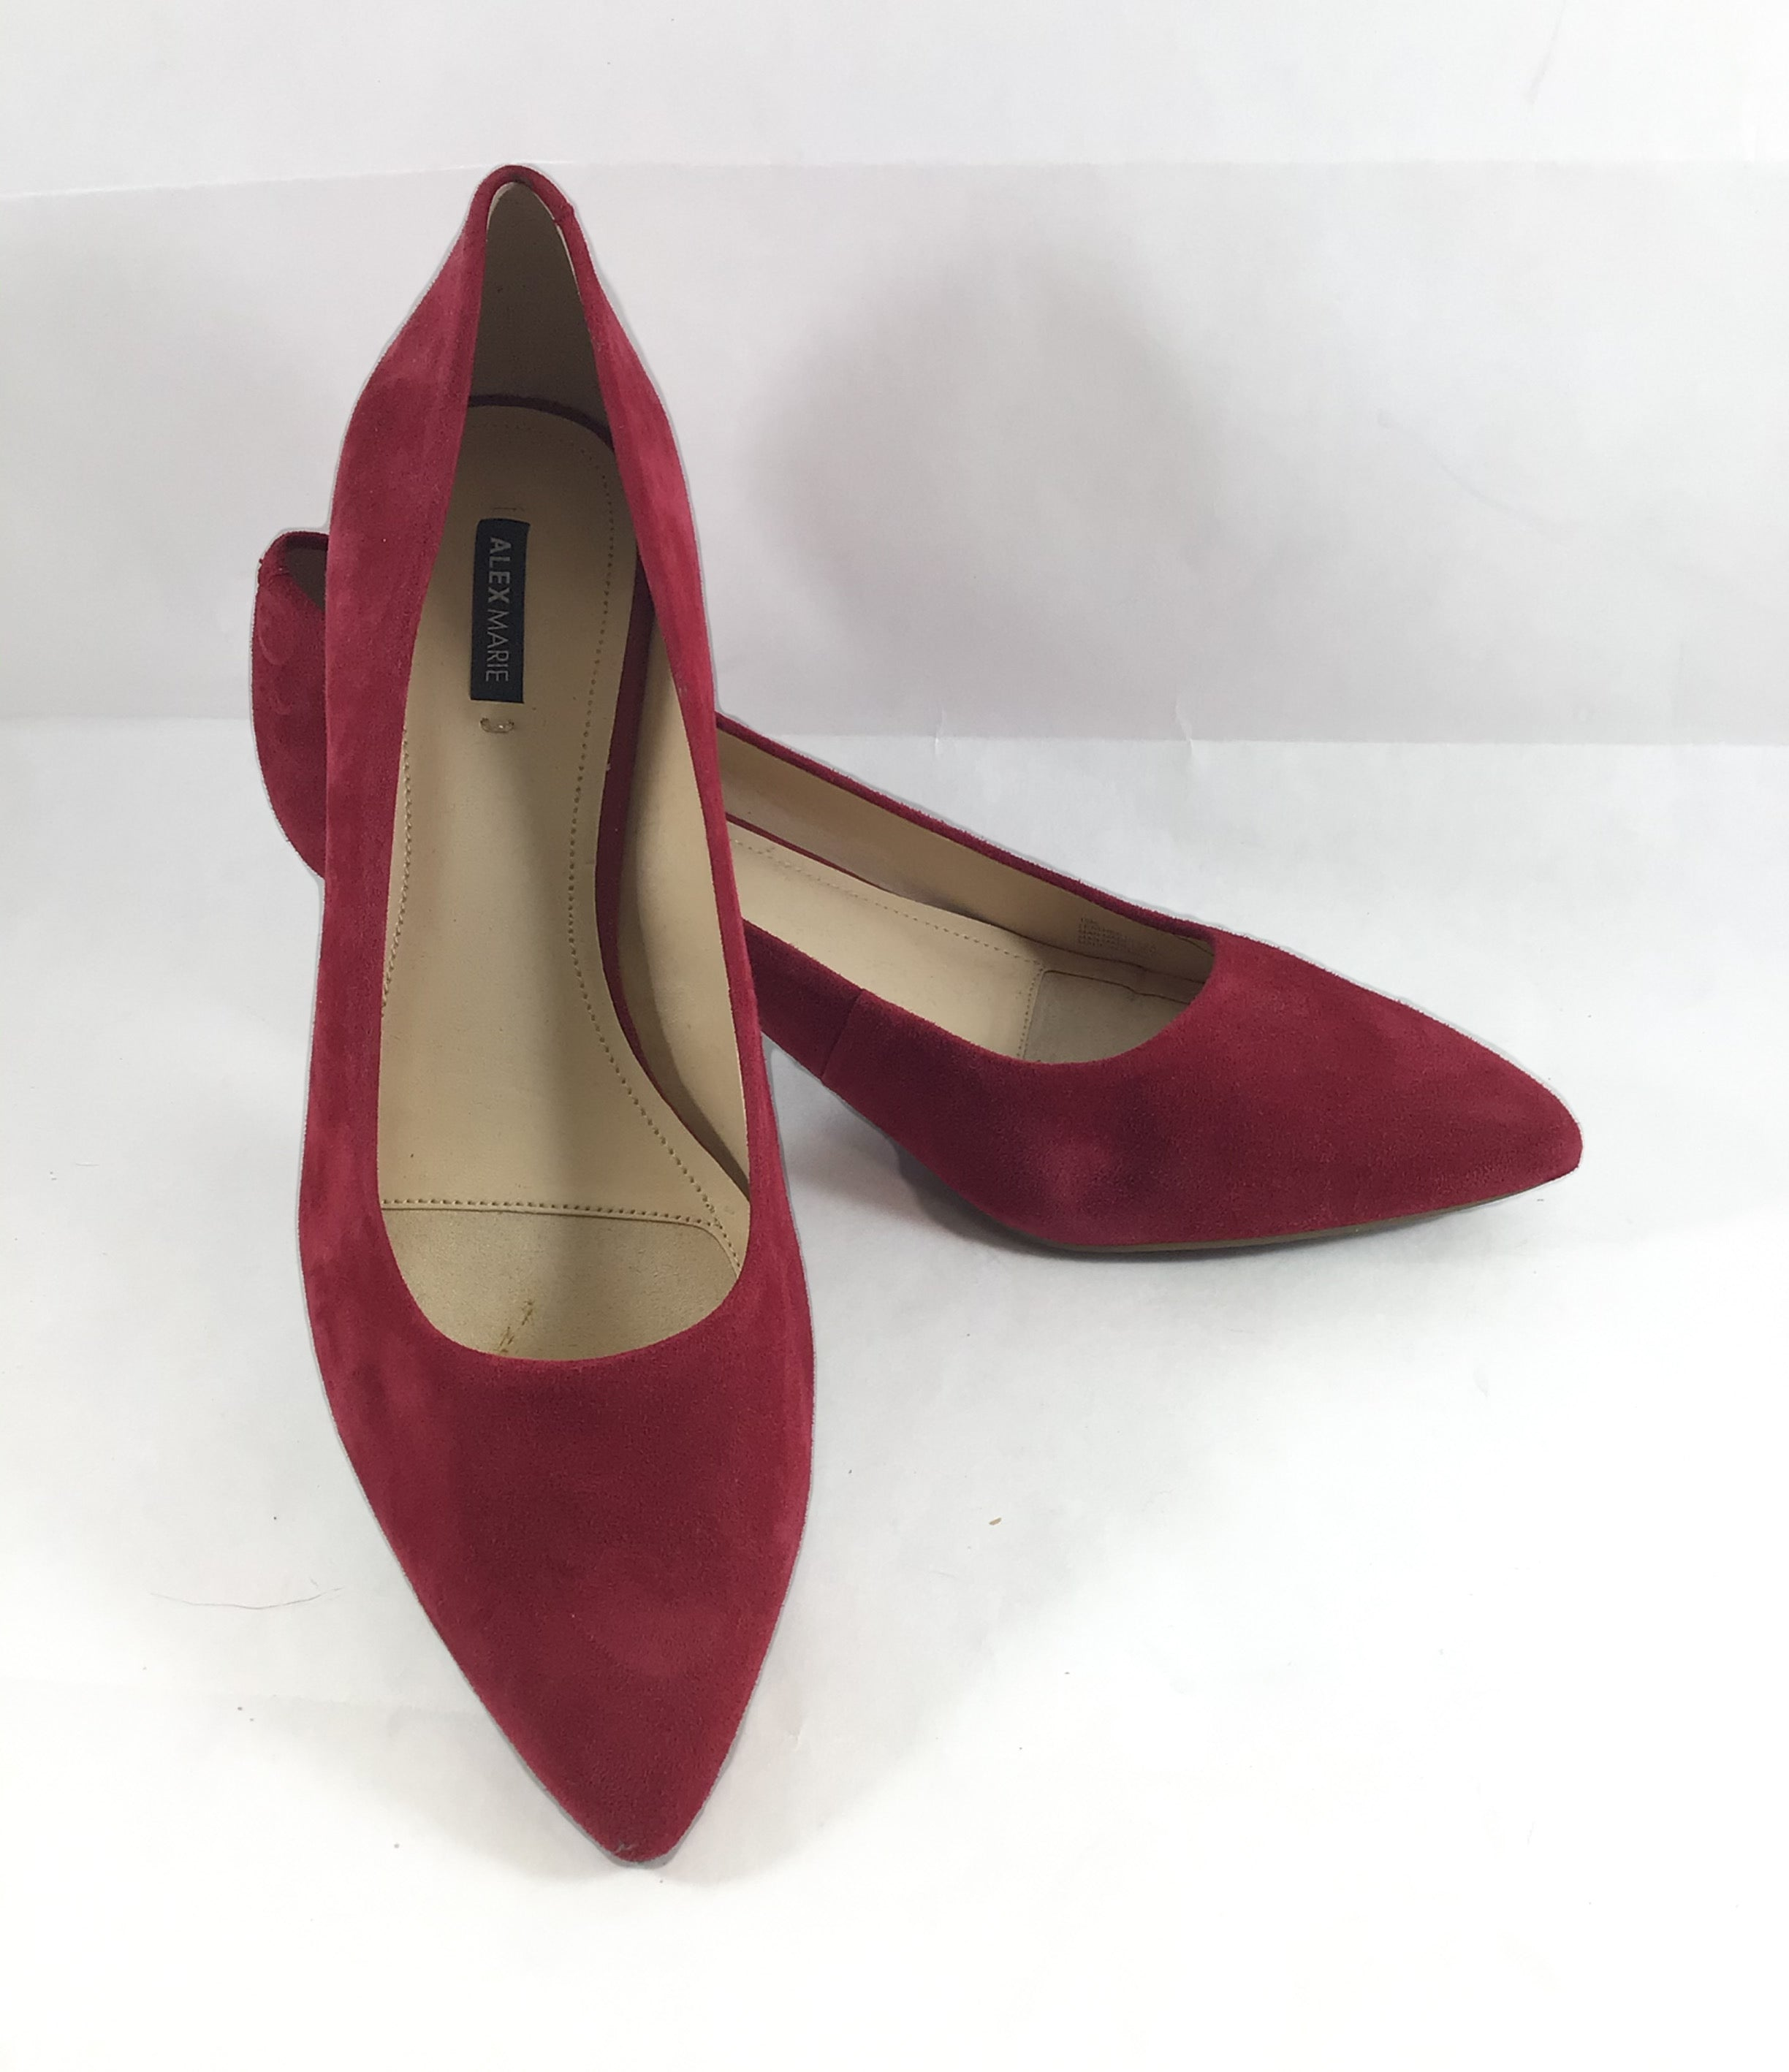 Primary Photo - BRAND: ALEX MARIE <BR>STYLE: SHOES LOW HEEL <BR>COLOR: RED <BR>SIZE: 10 <BR>SKU: 213-21394-38314